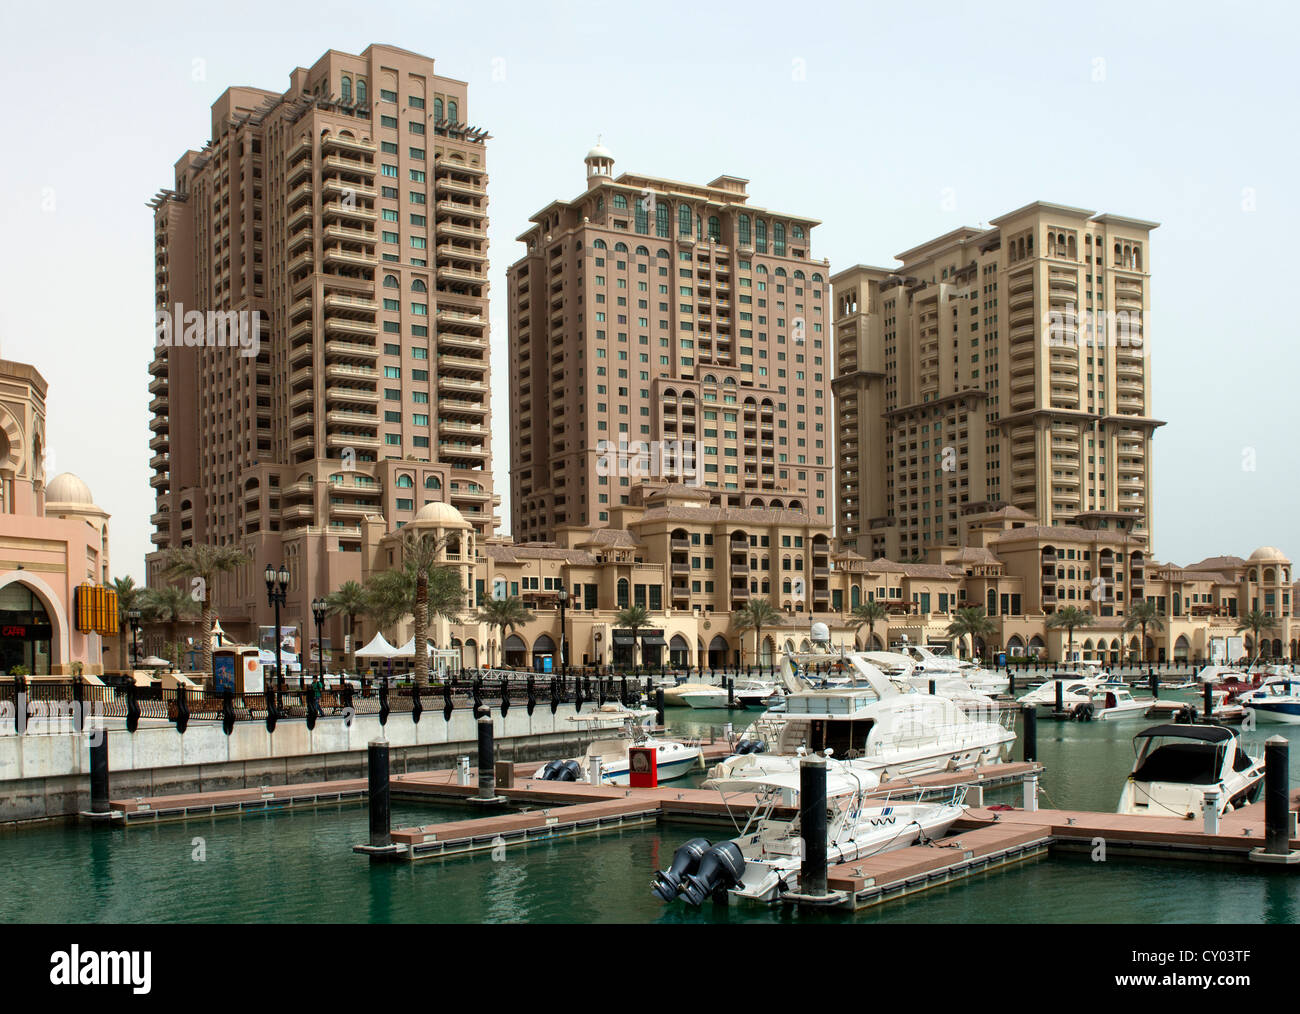 Porto Arabia marina, The Pearl residential district, Doha, Qatar, Middle East - Stock Image